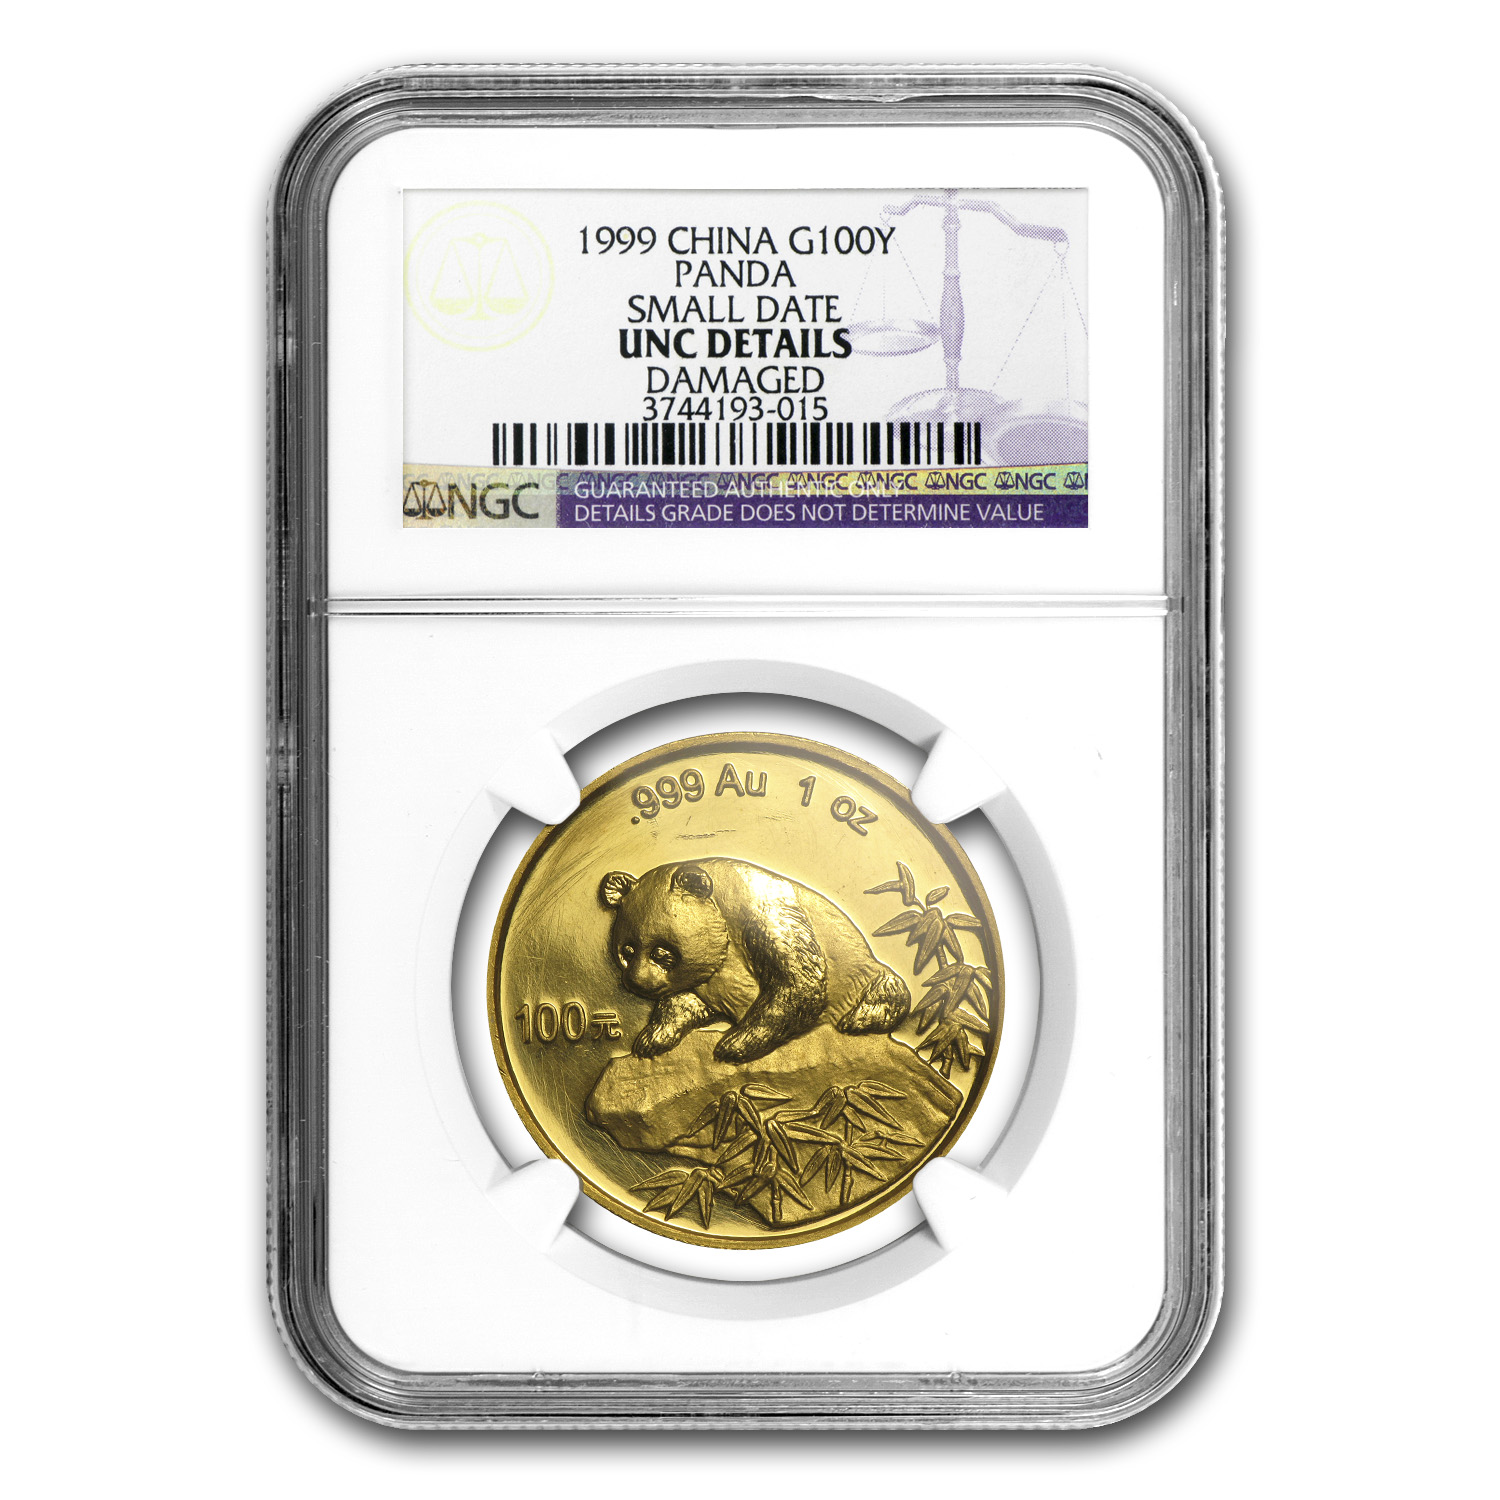 1999 China 1 oz Gold Panda Small Date Unc Details NGC